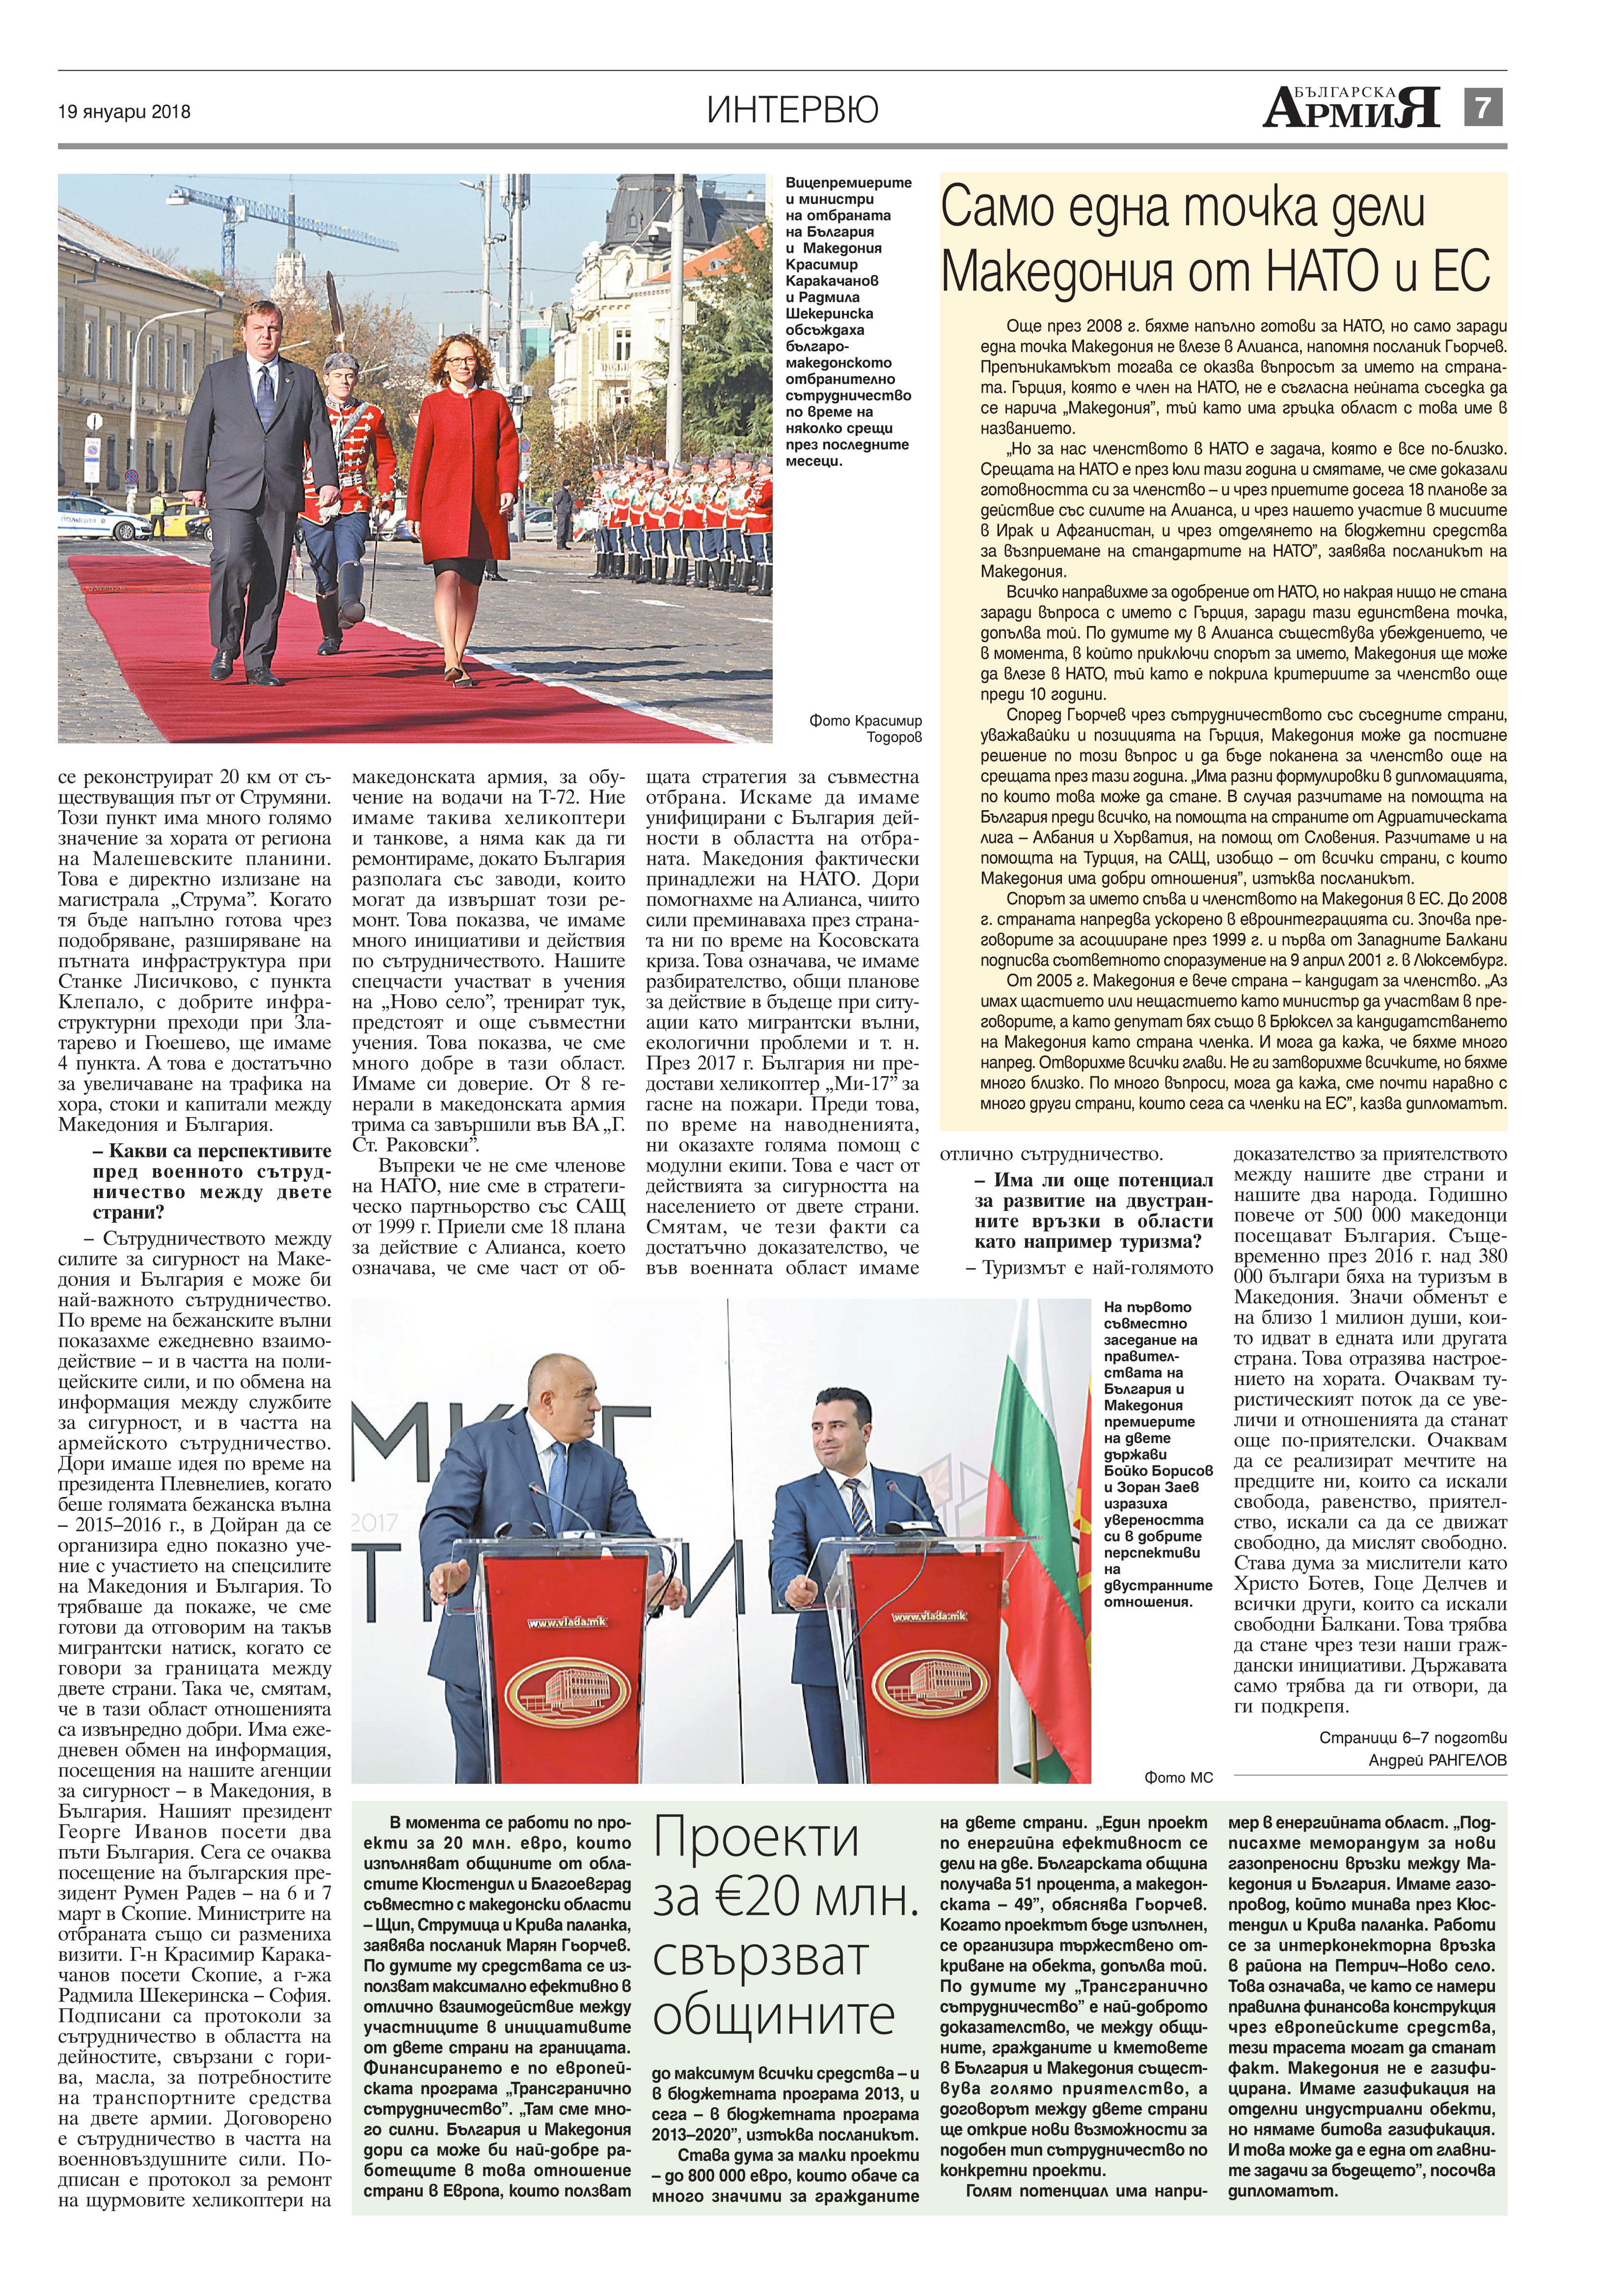 https://armymedia.bg/wp-content/uploads/2015/06/07.page1_-35.jpg